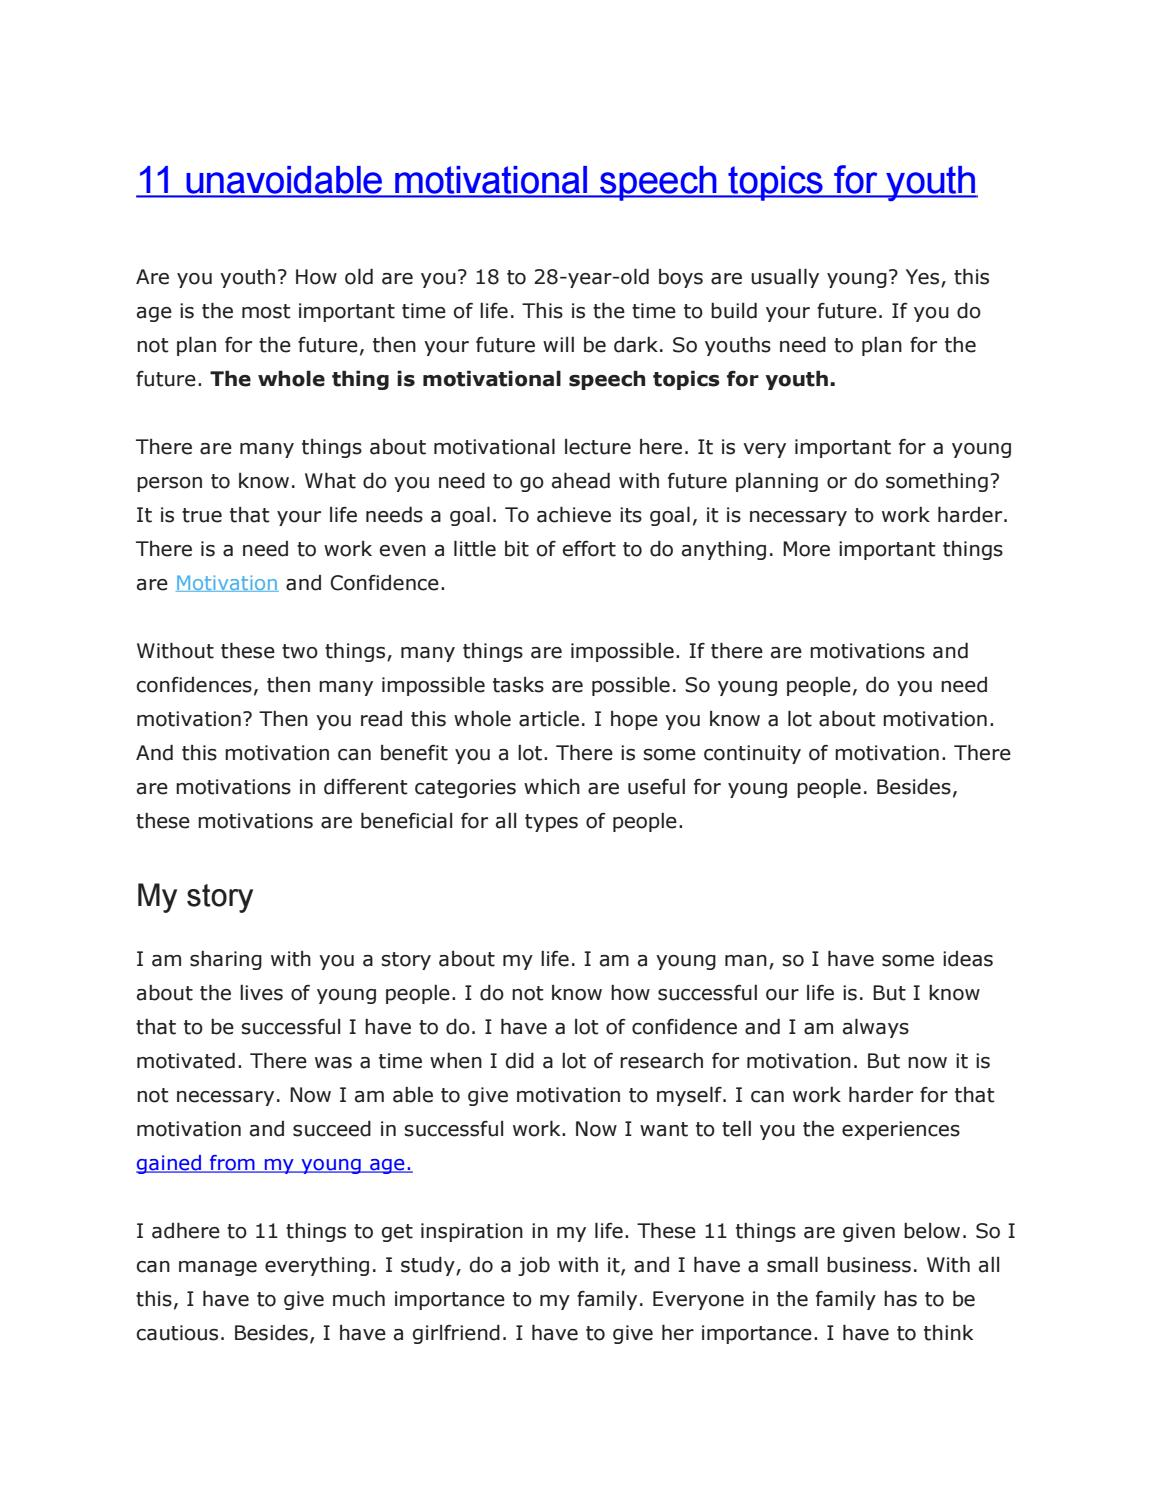 11 unavoidable motivational speech topics for youth by